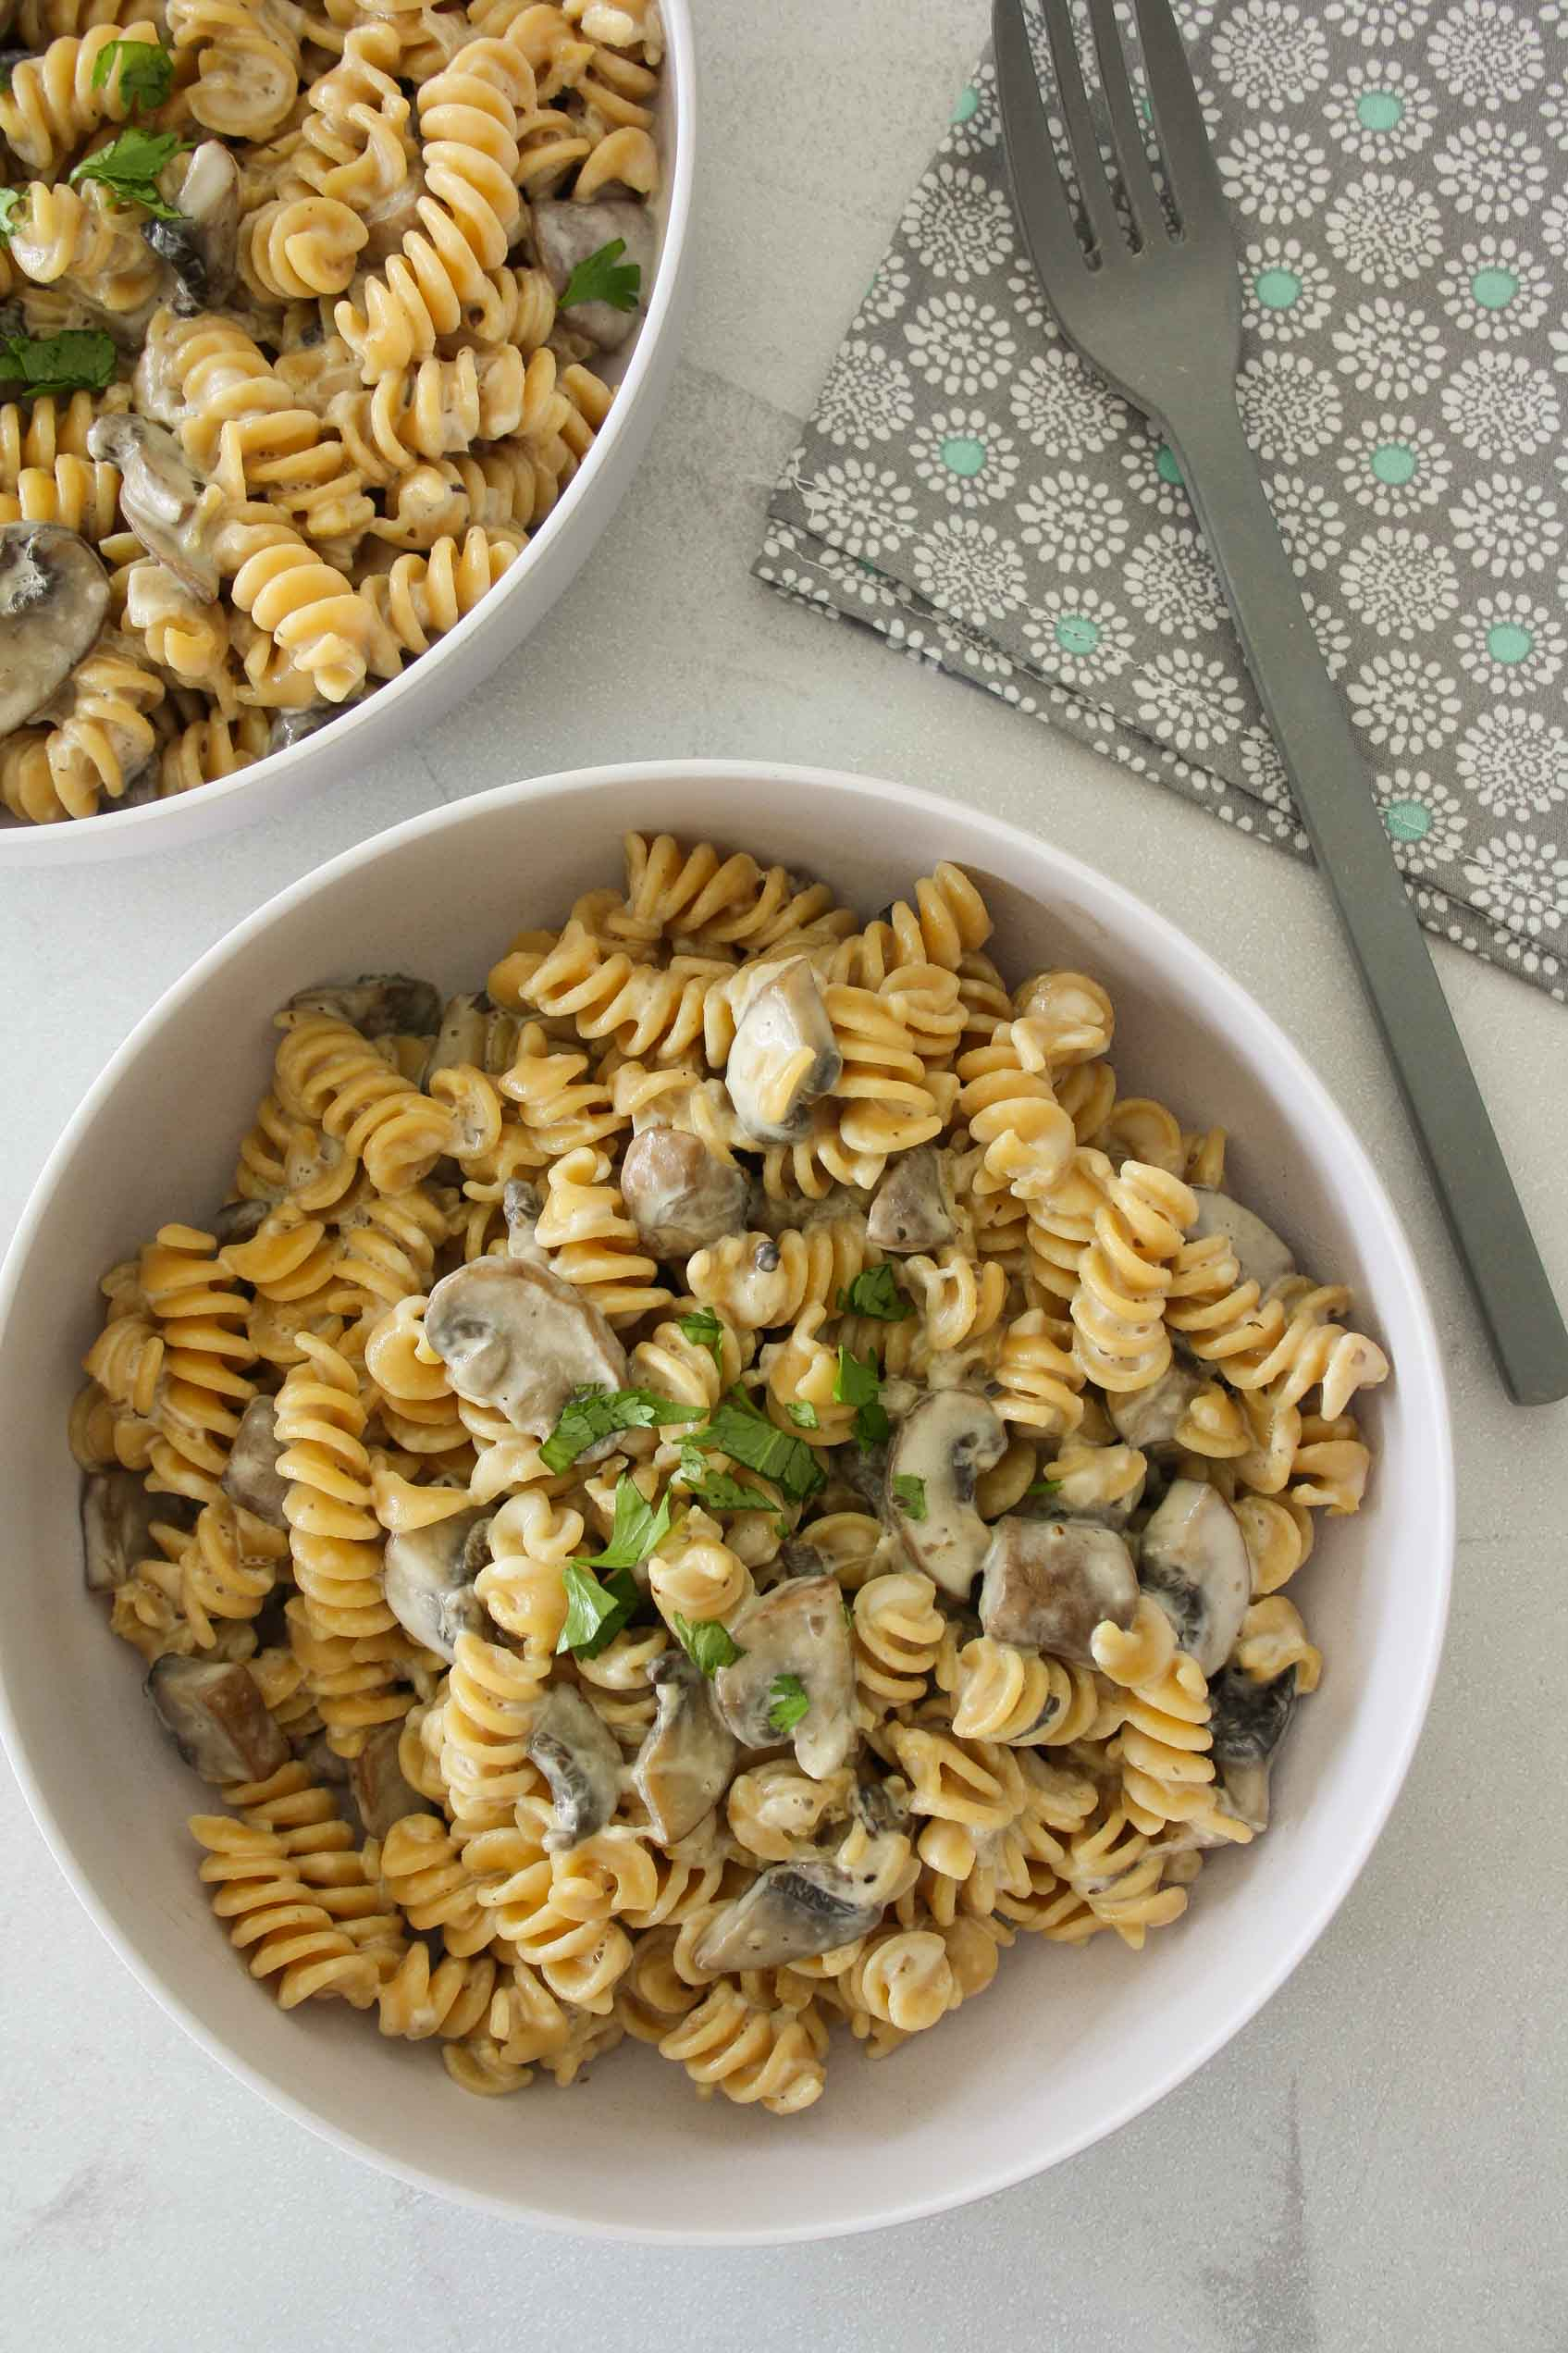 chickpea pasta with creamy mushroom sauce in a bowl